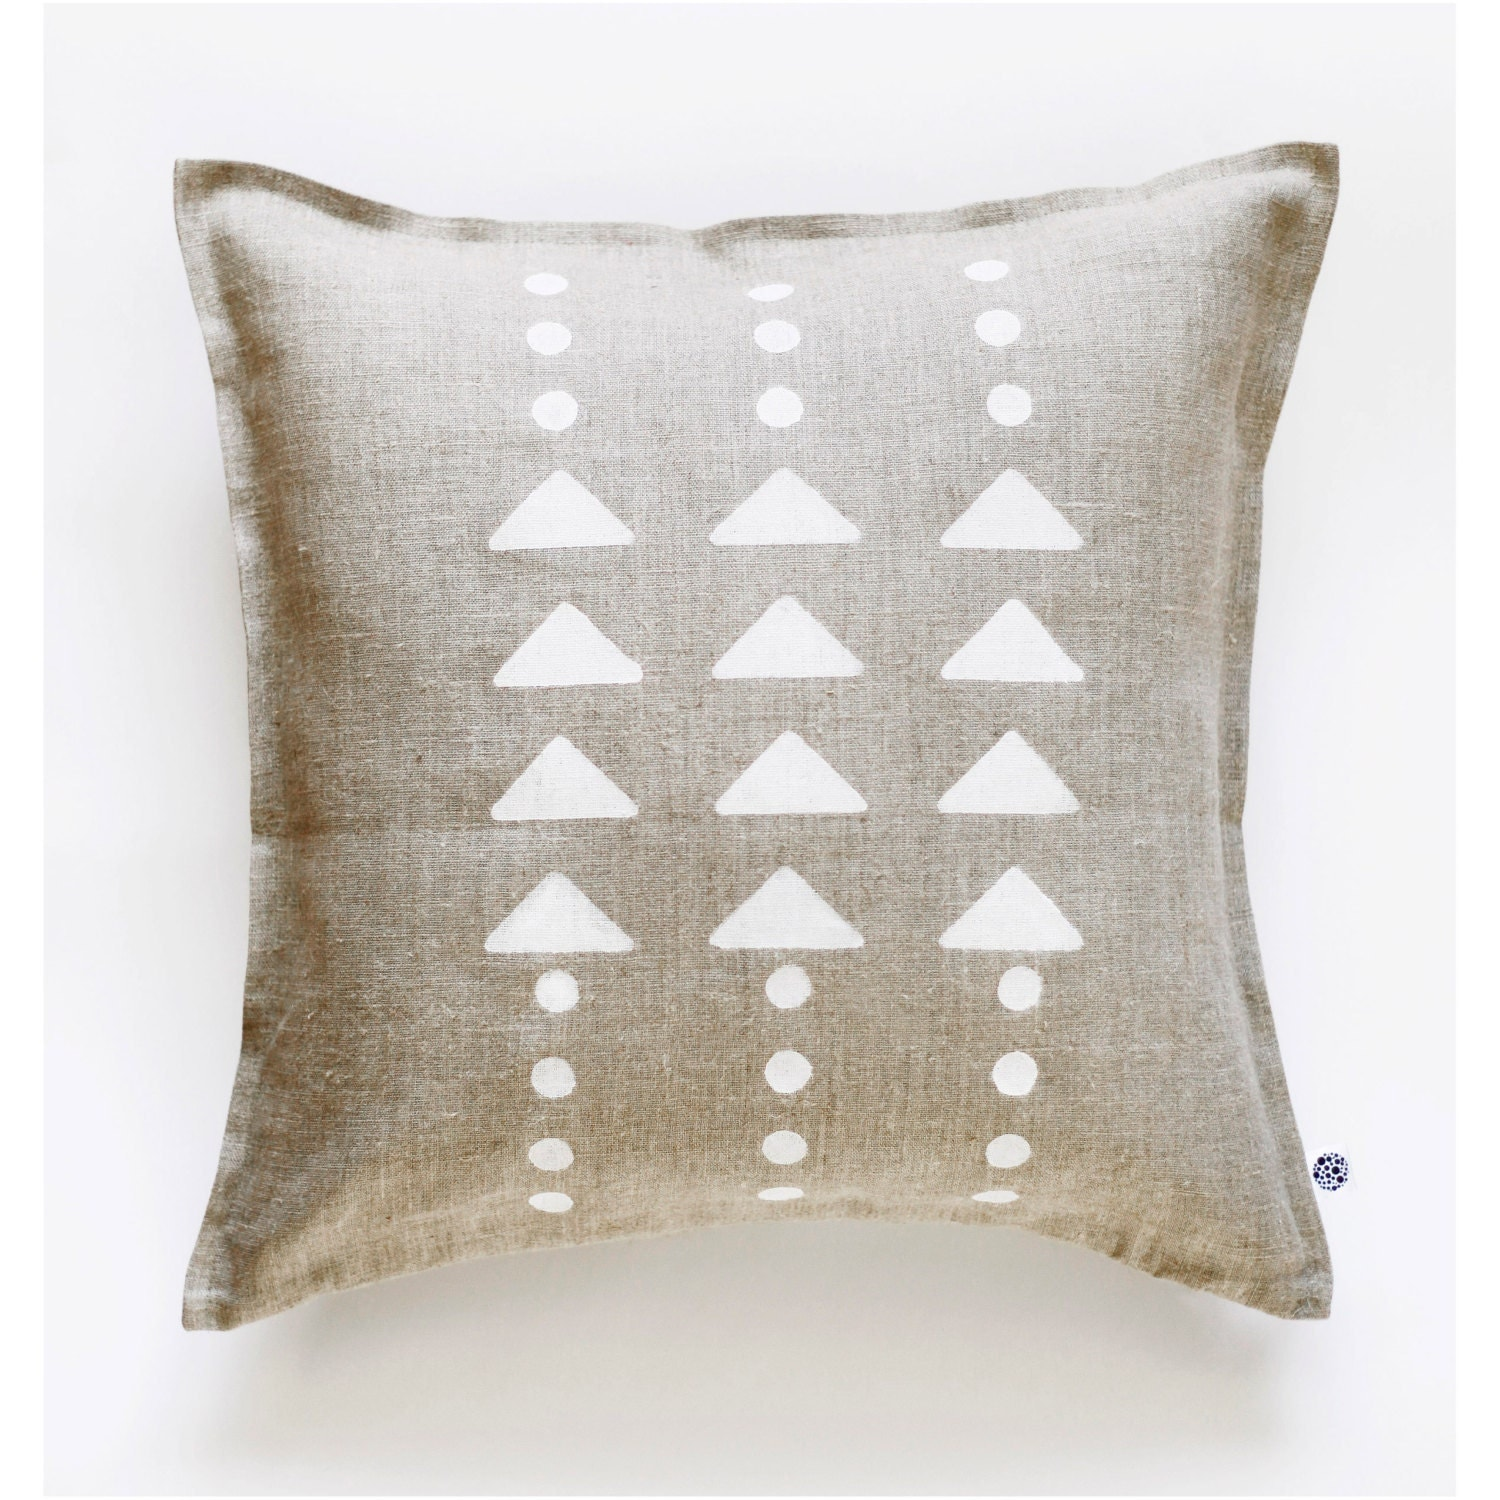 Decorative pillow cover linen pillowcase hand painted for Hand painted pillows